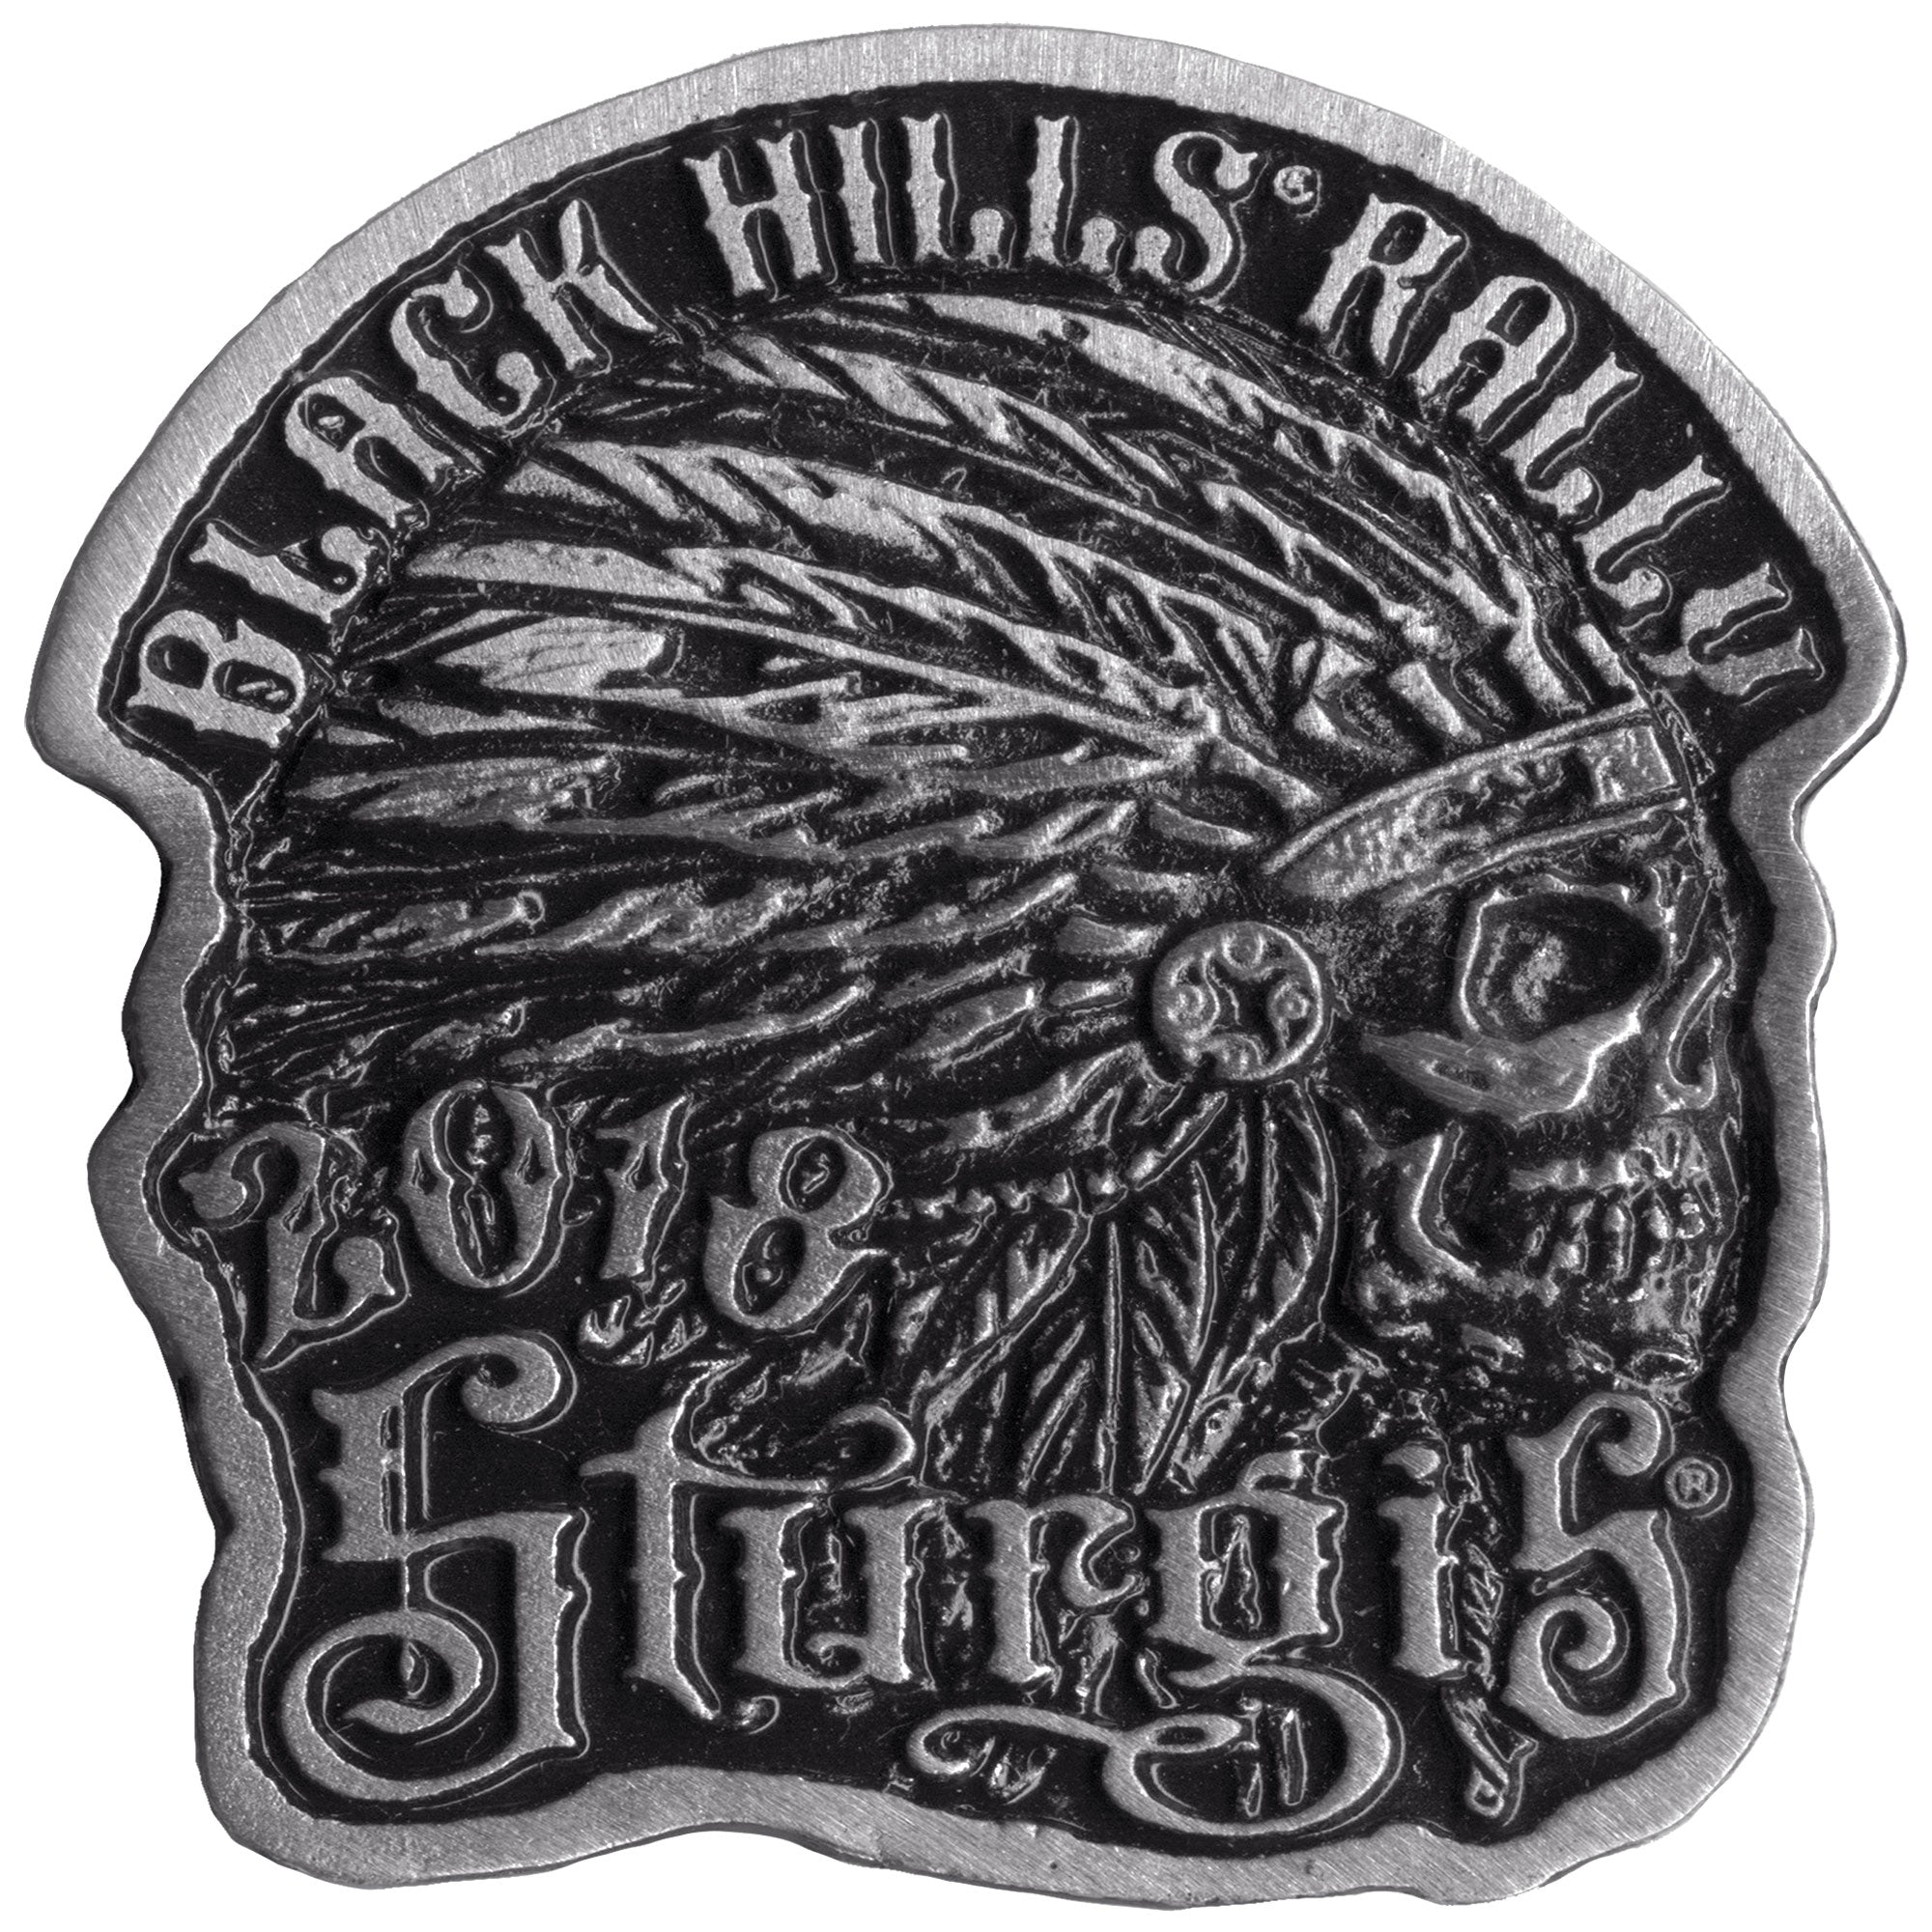 Official 2018 Sturgis Black Hills Rally Indian Pin